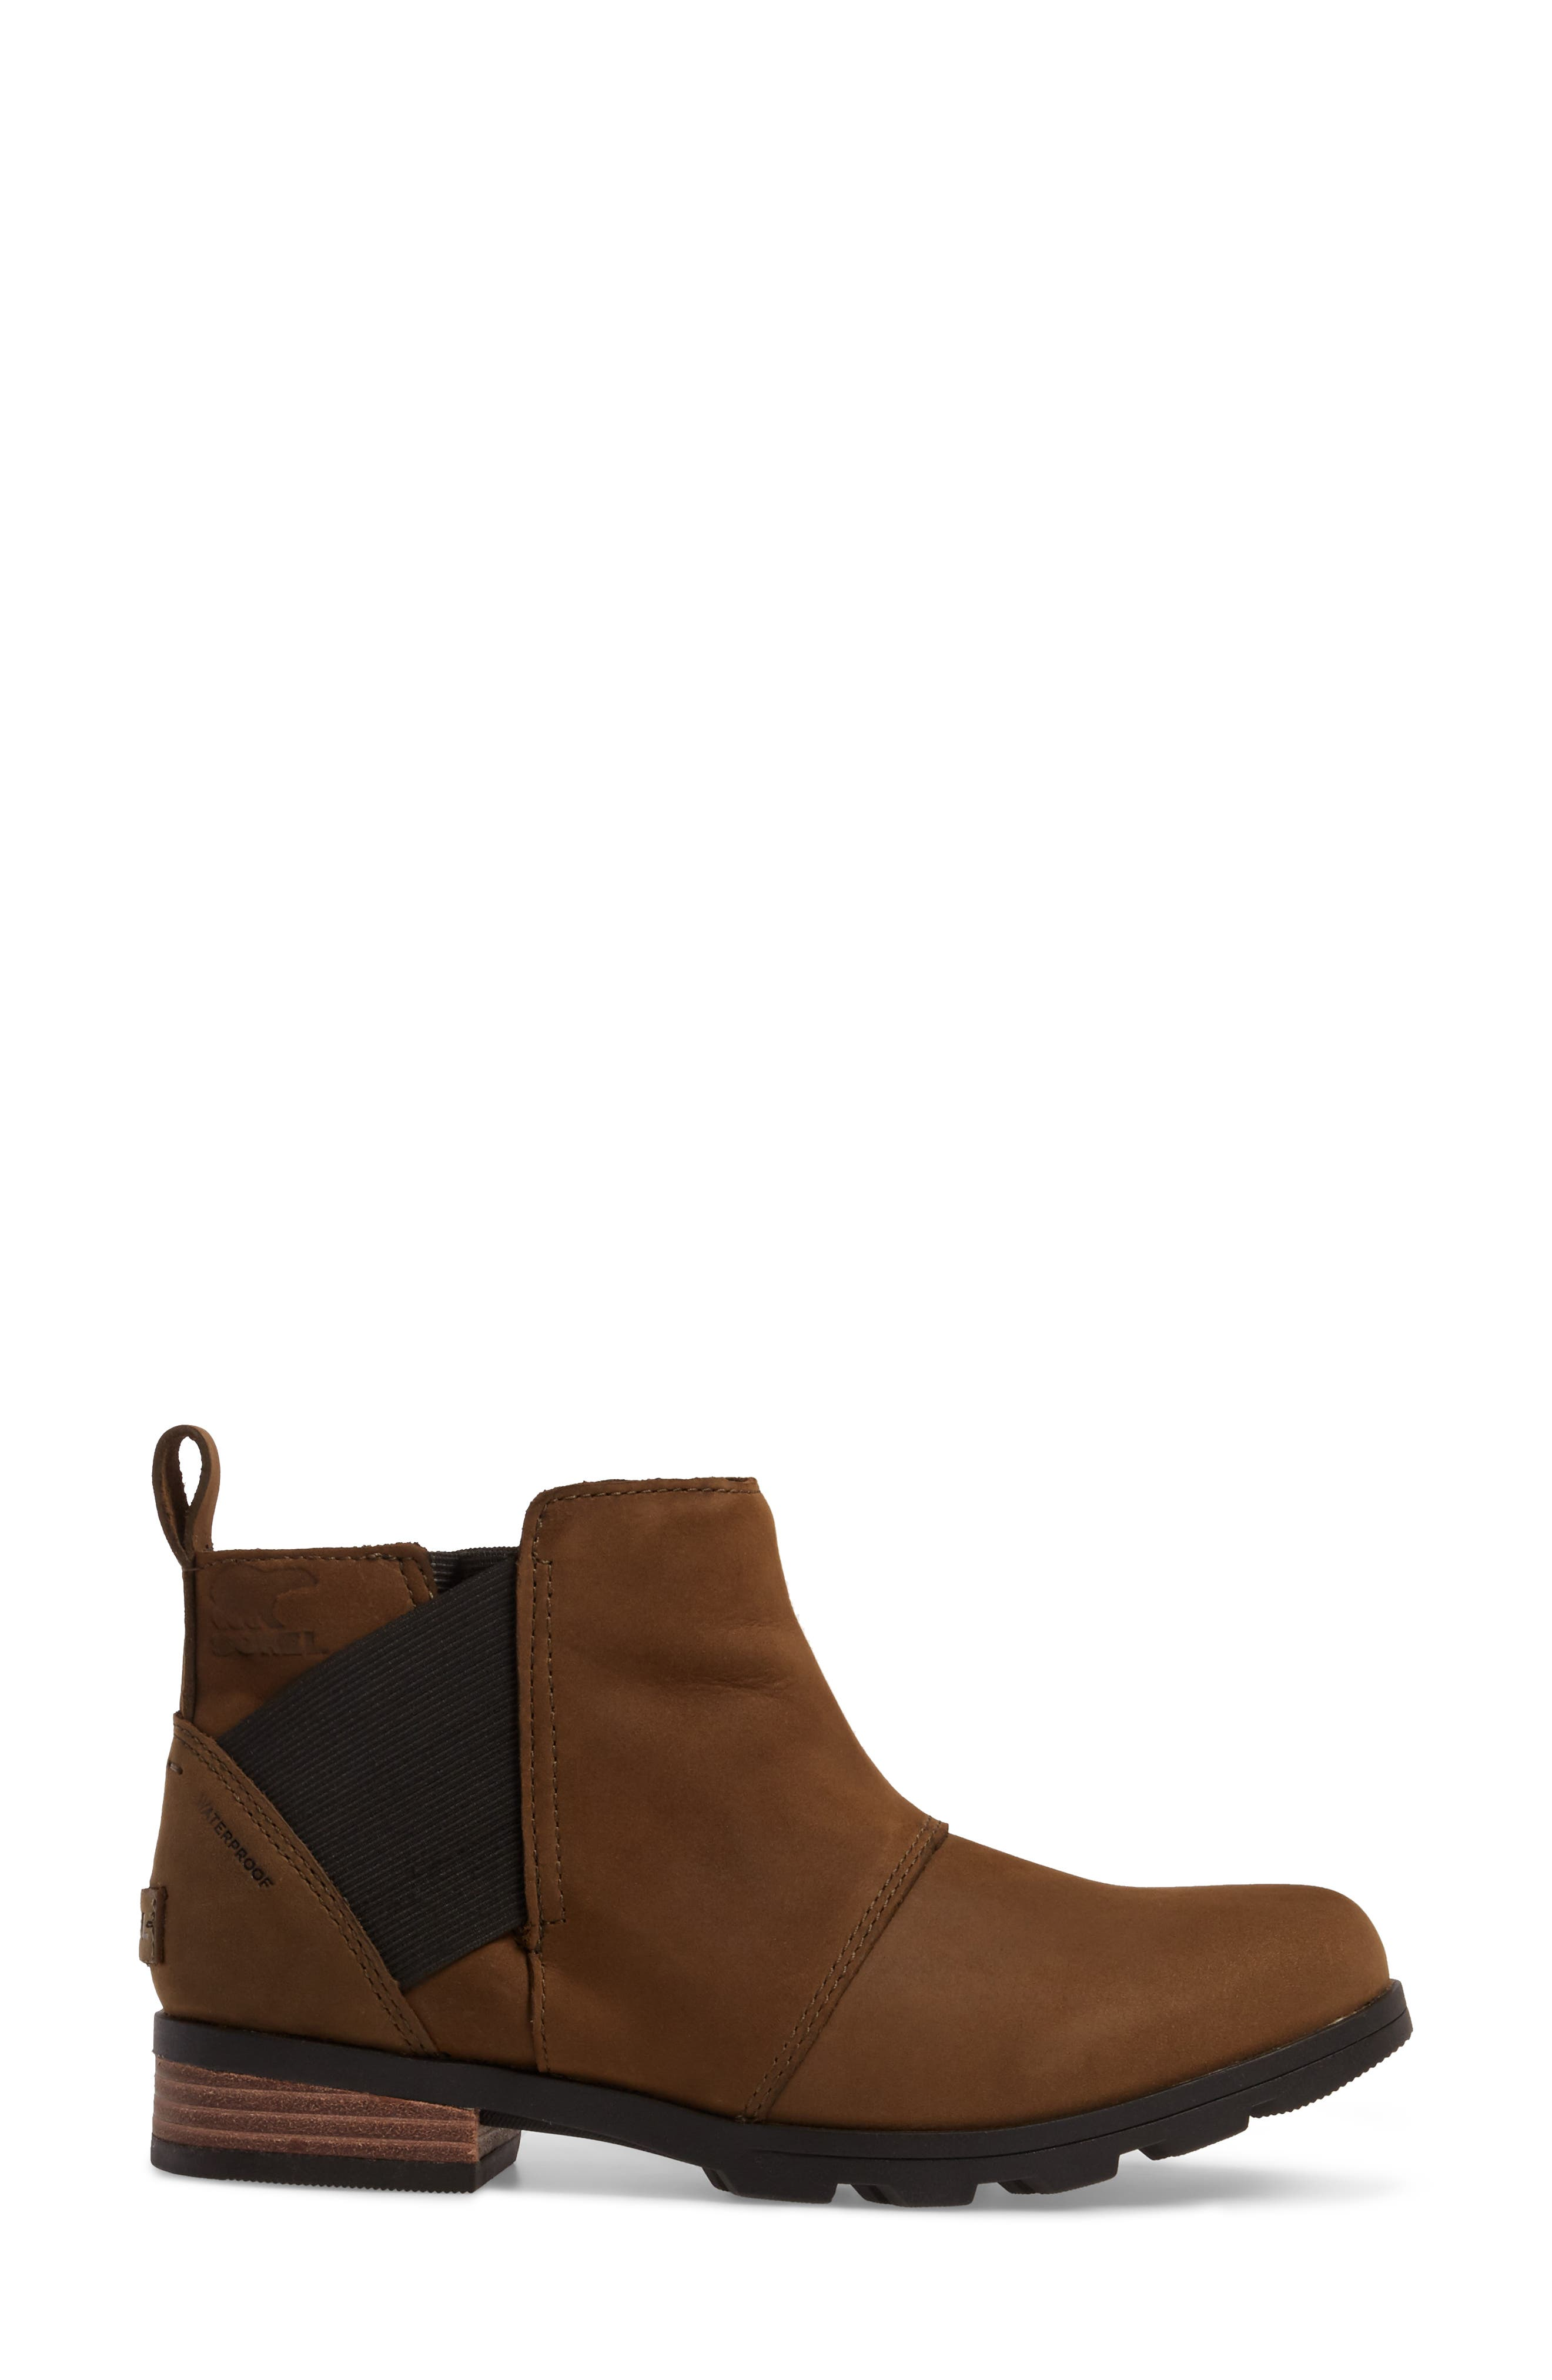 Alternate Image 3  - Sorel Emelie Waterproof Chelsea Boot (Women)